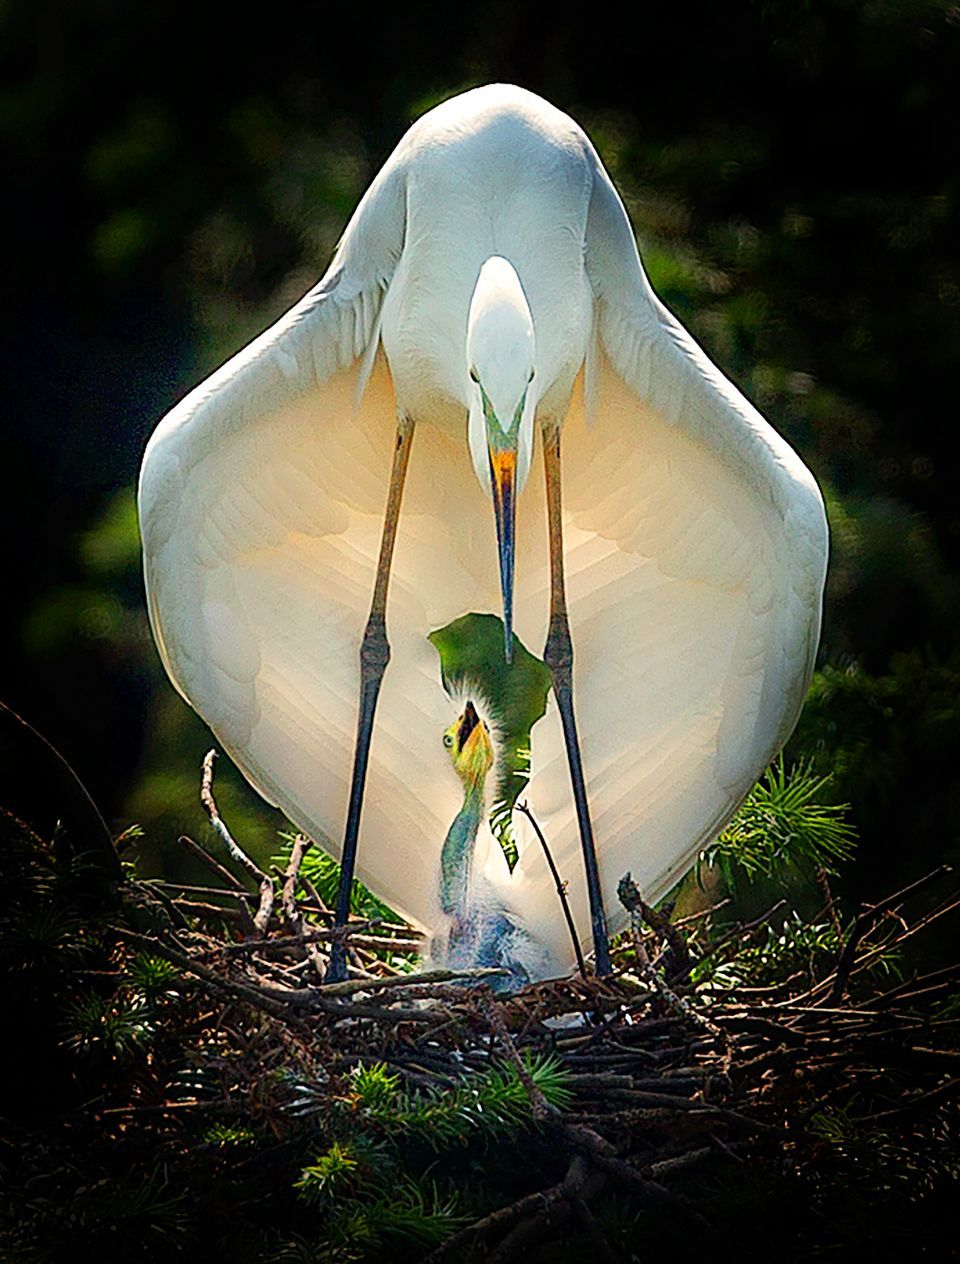 Mother S Embrace By Fuyang Zhou 2017 National Geographic Nature Photographer Of The Year Animals Beautiful Birds Animals Beautiful